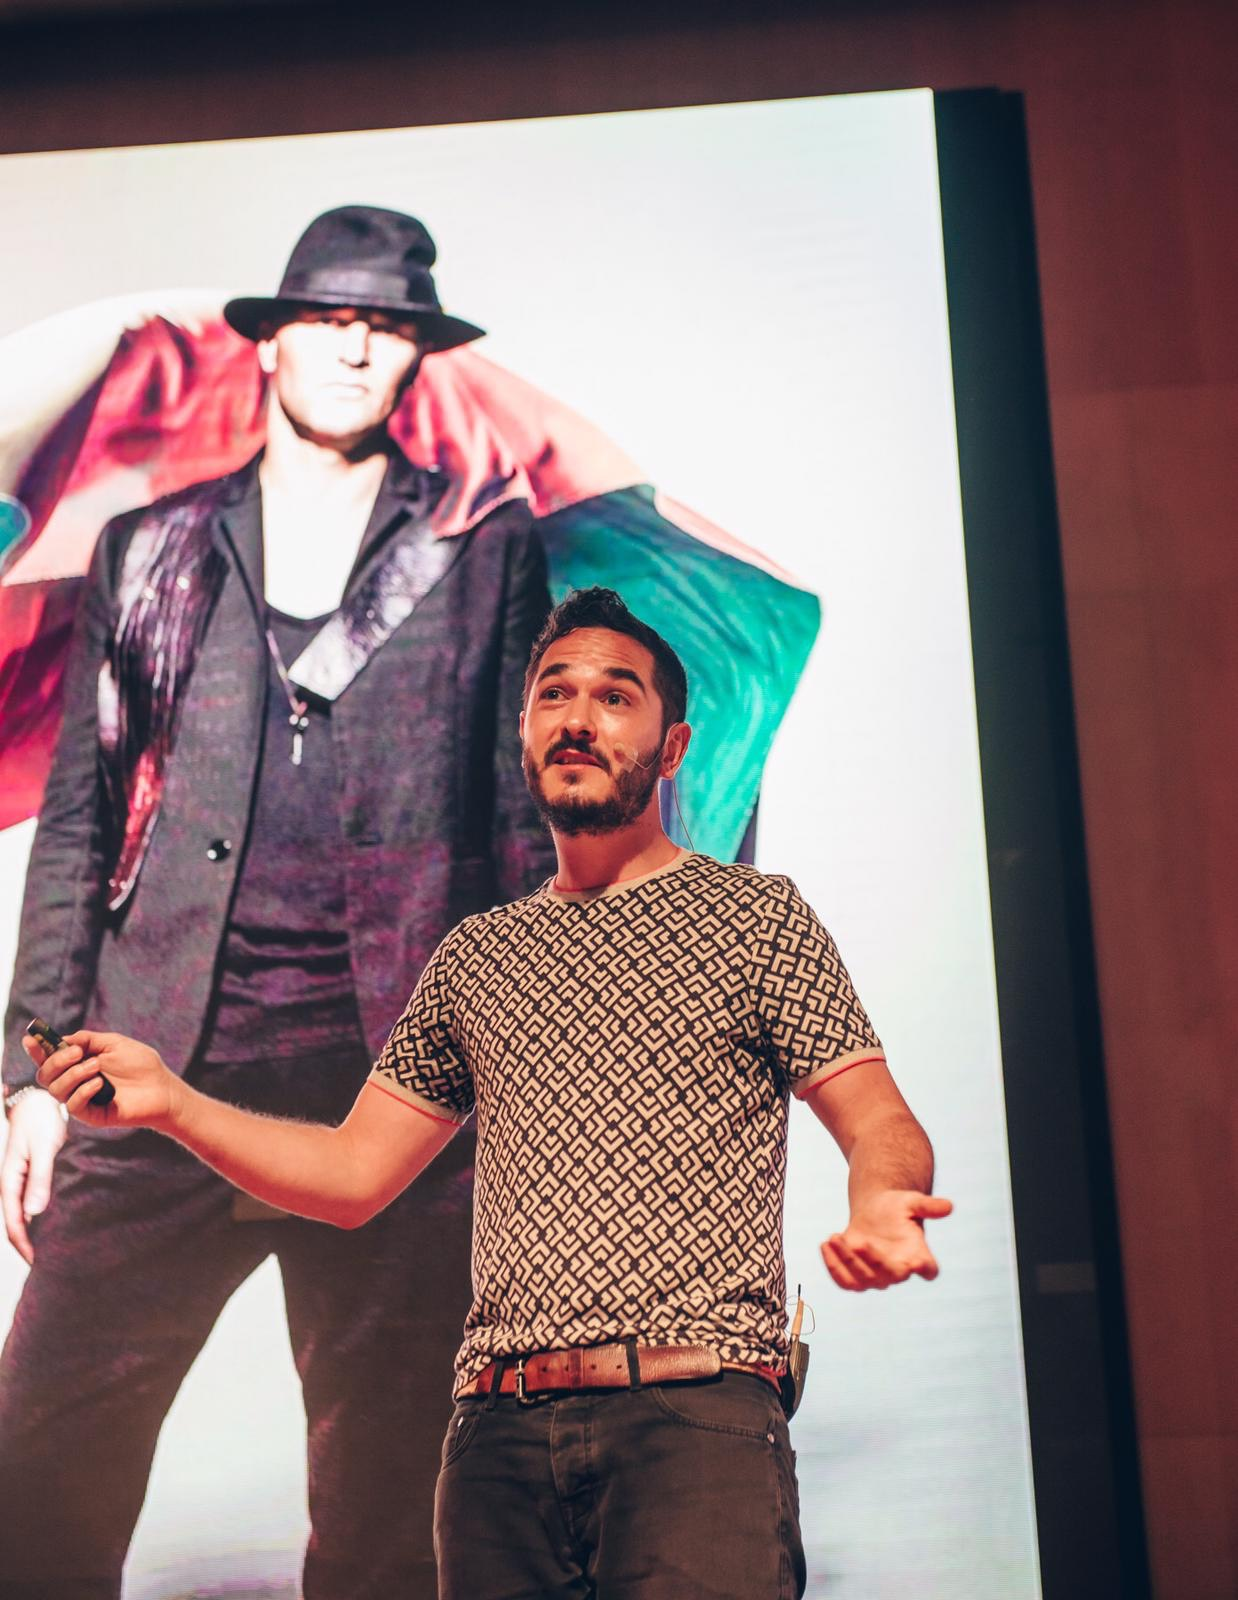 Casper Franken, Shotopop at OFFF TLV. Photo: Chris Milne